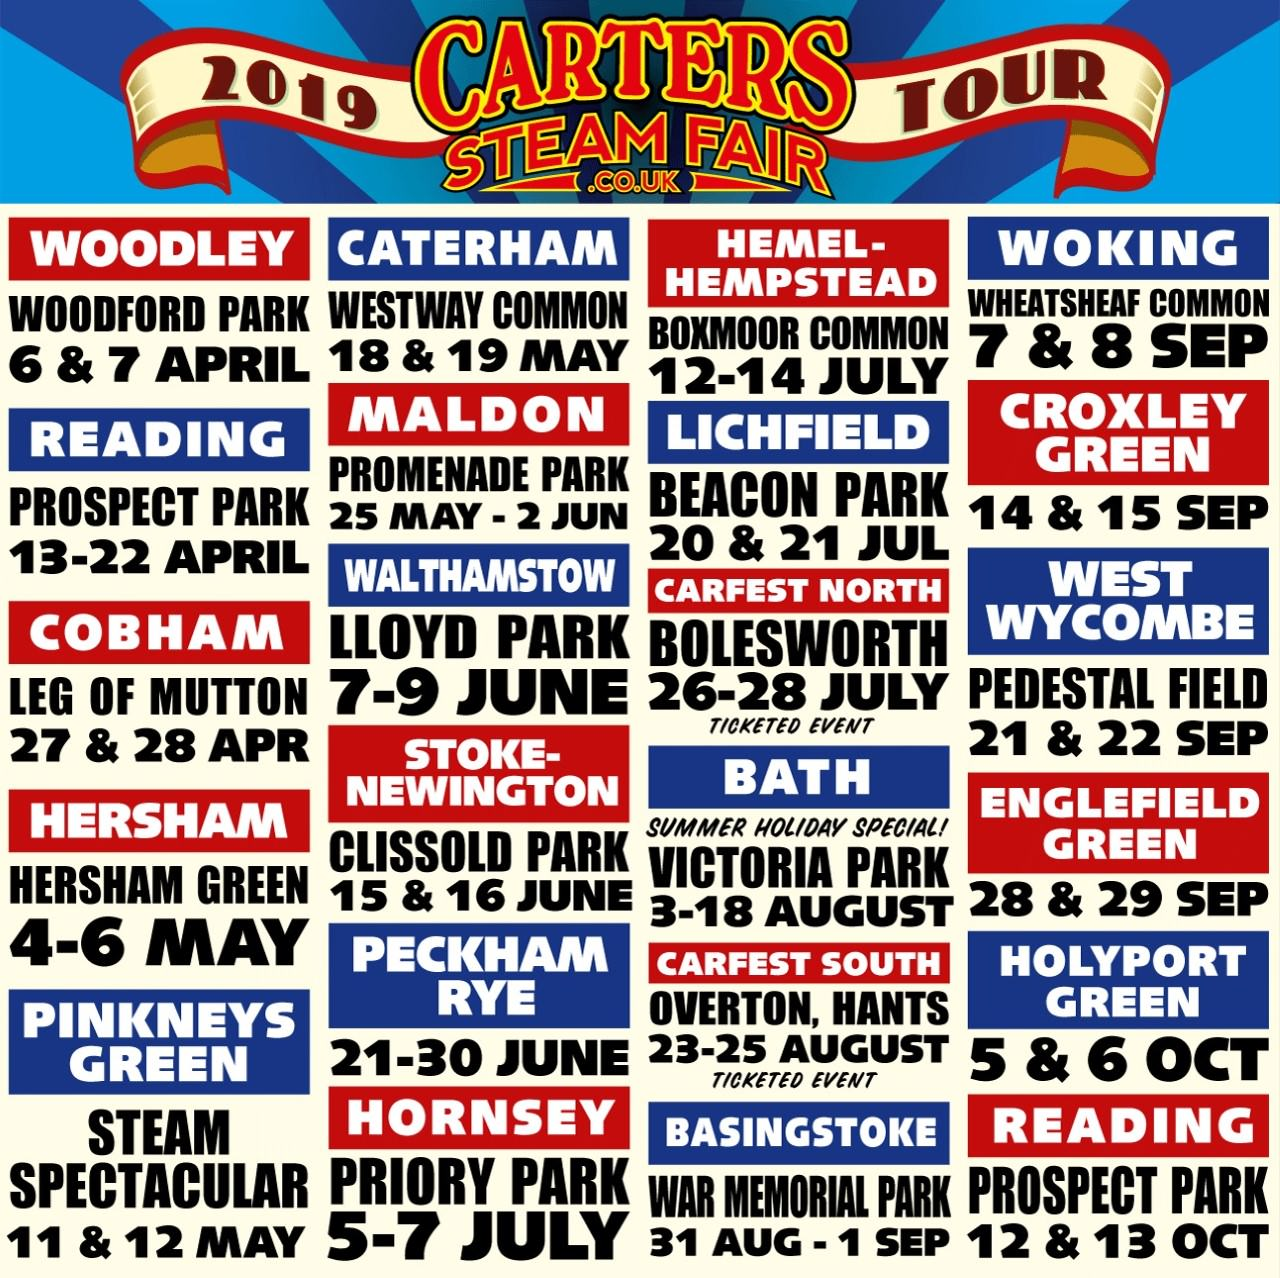 Carters 2019 Tour-Graphic.jpg